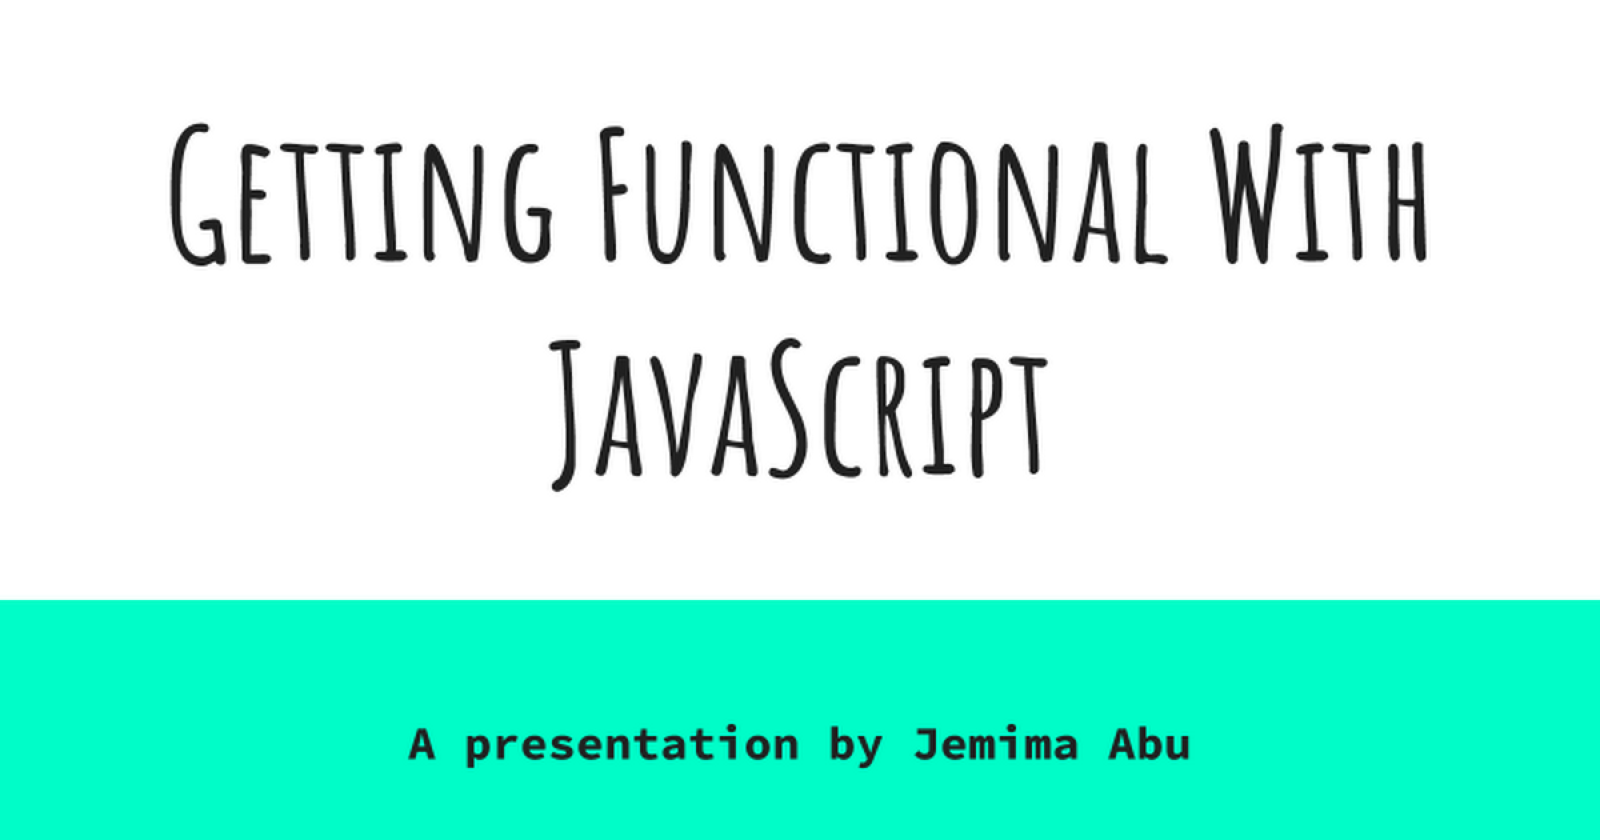 Getting Functional With JavaScript